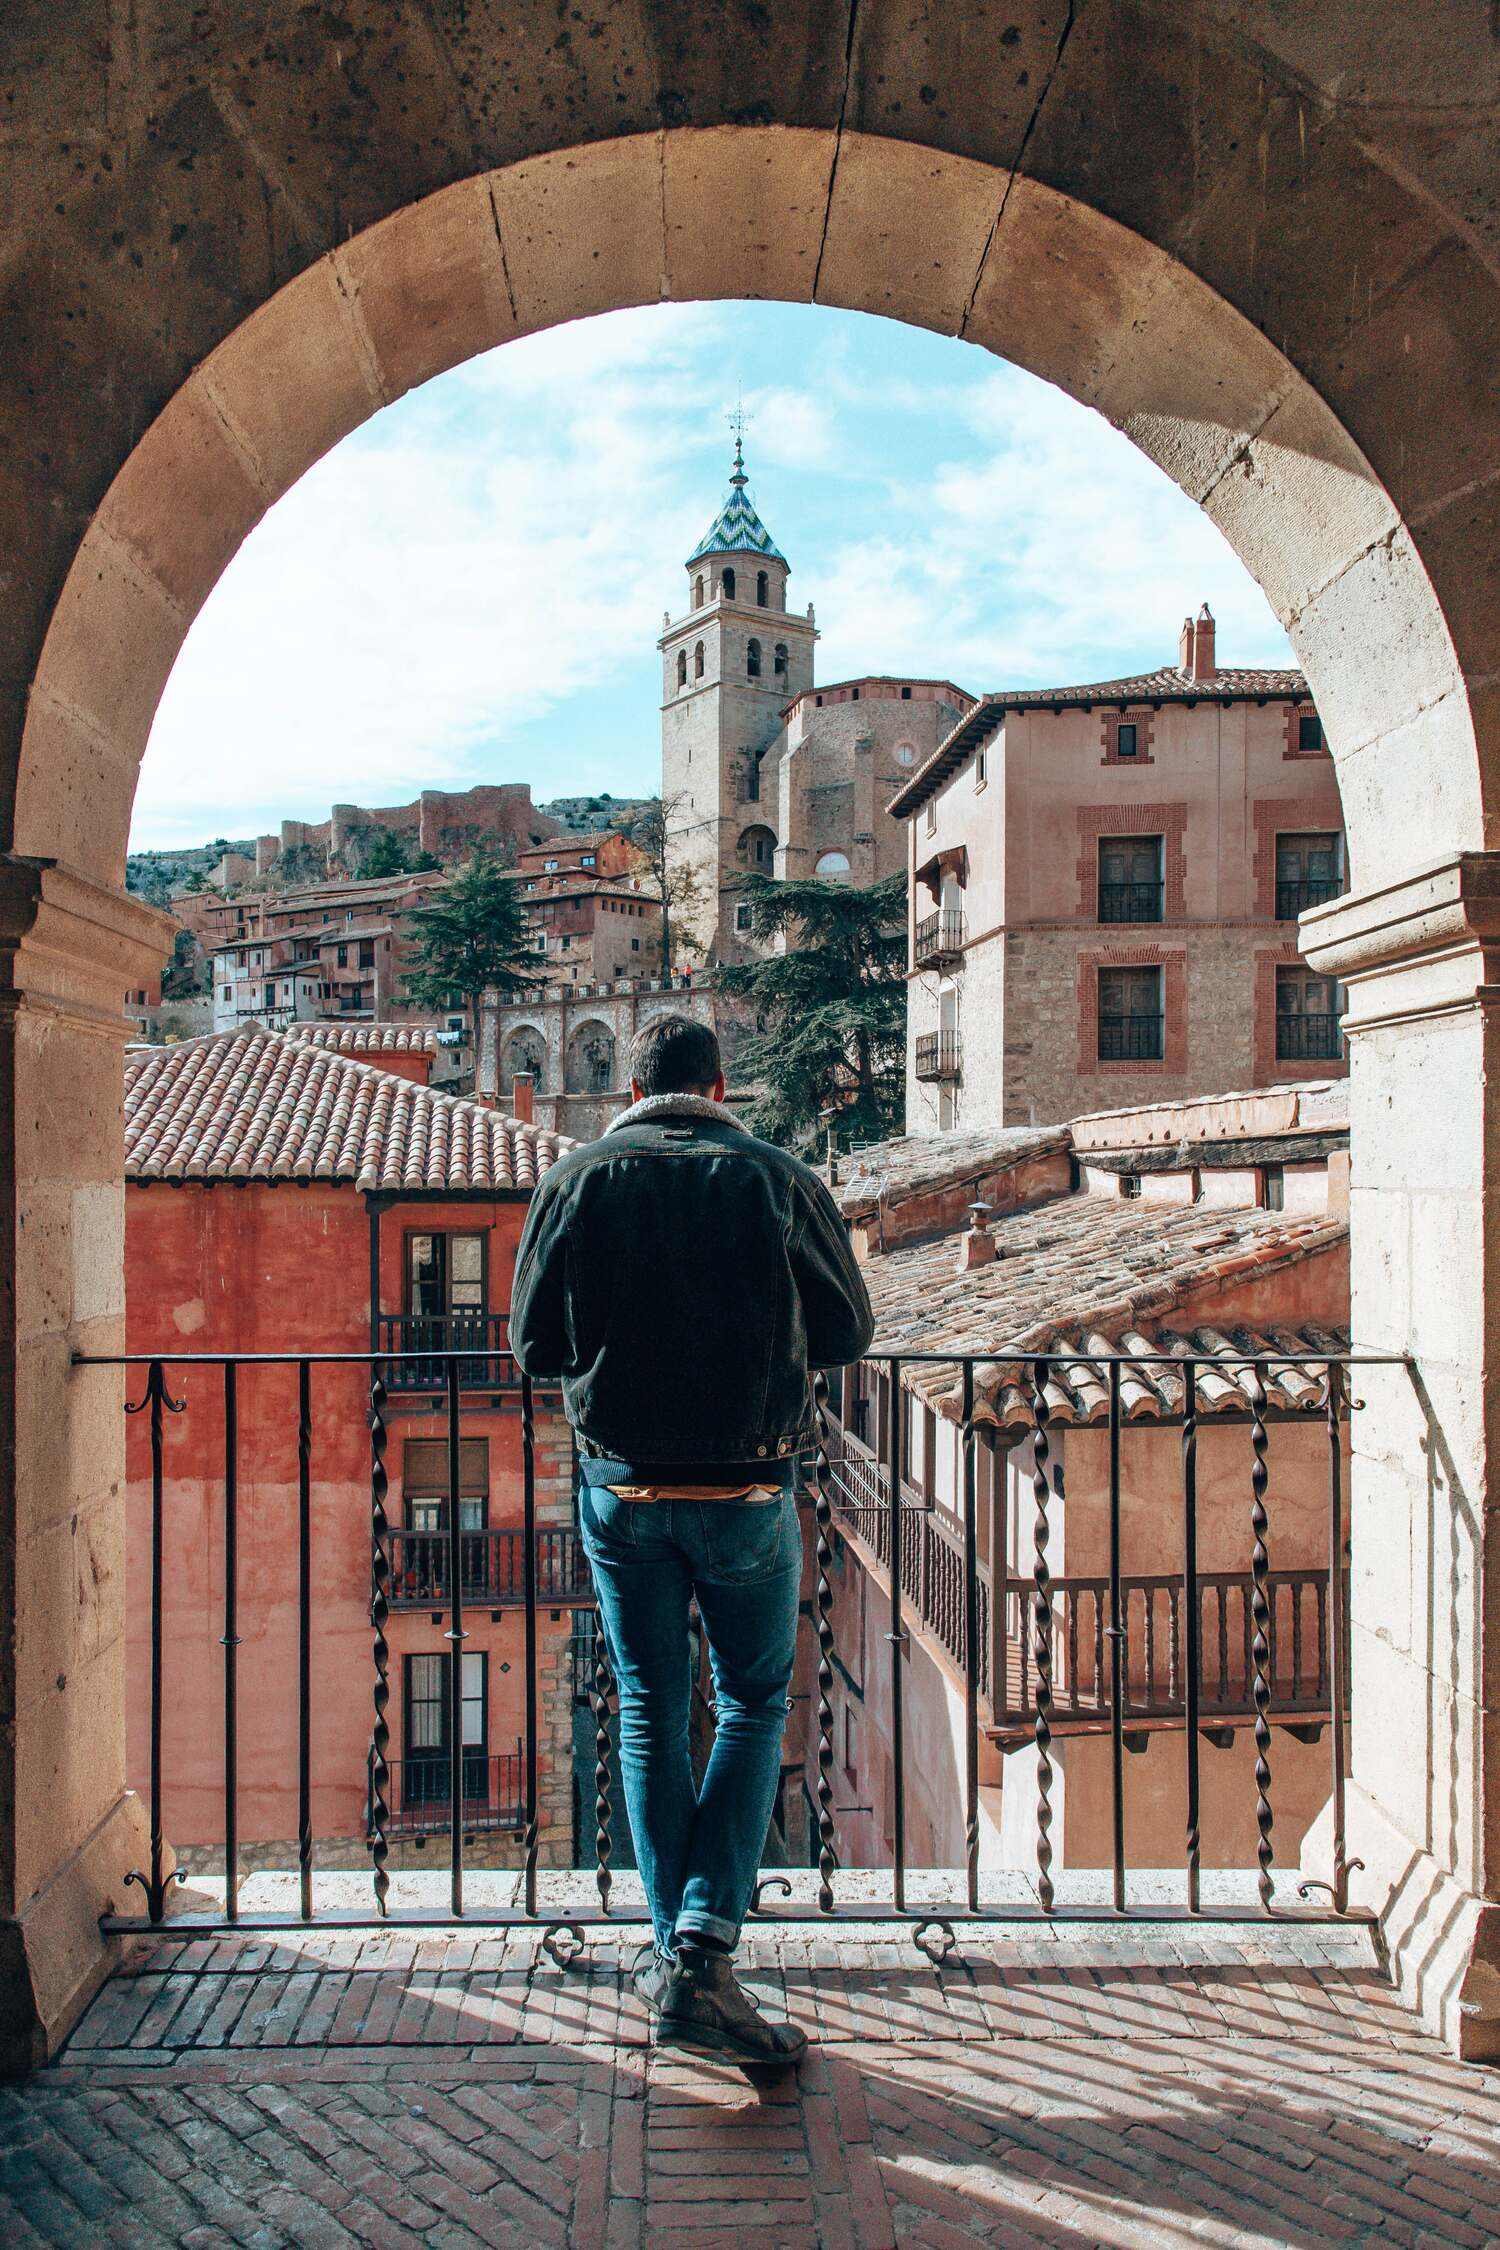 Looking up at the Catedral de Albarracín from the Plaza Major in Albarracin in Spain.